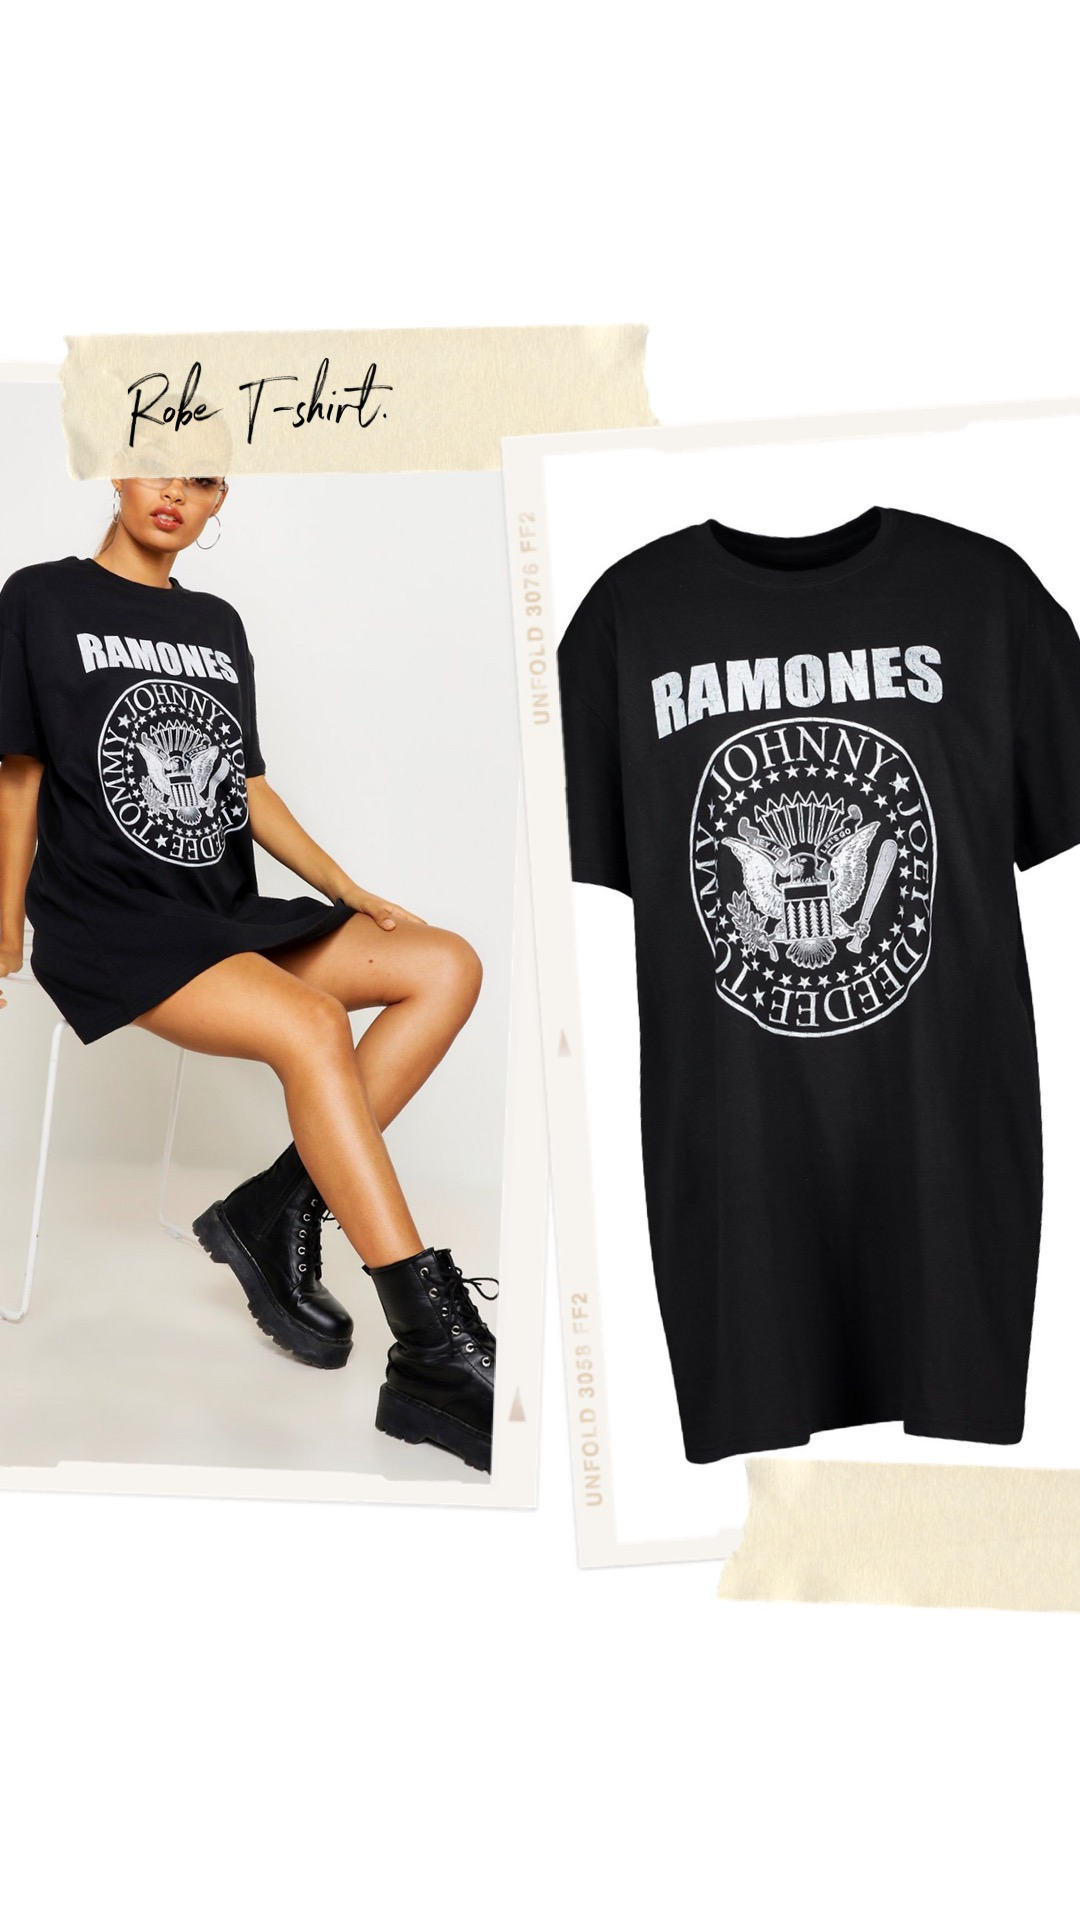 Robe t-shirt Ramones officiel https://fr.boohoo.com/robe-t-shirt-ramones-officiel/FZZ85064.html Code produit : FZZ85064